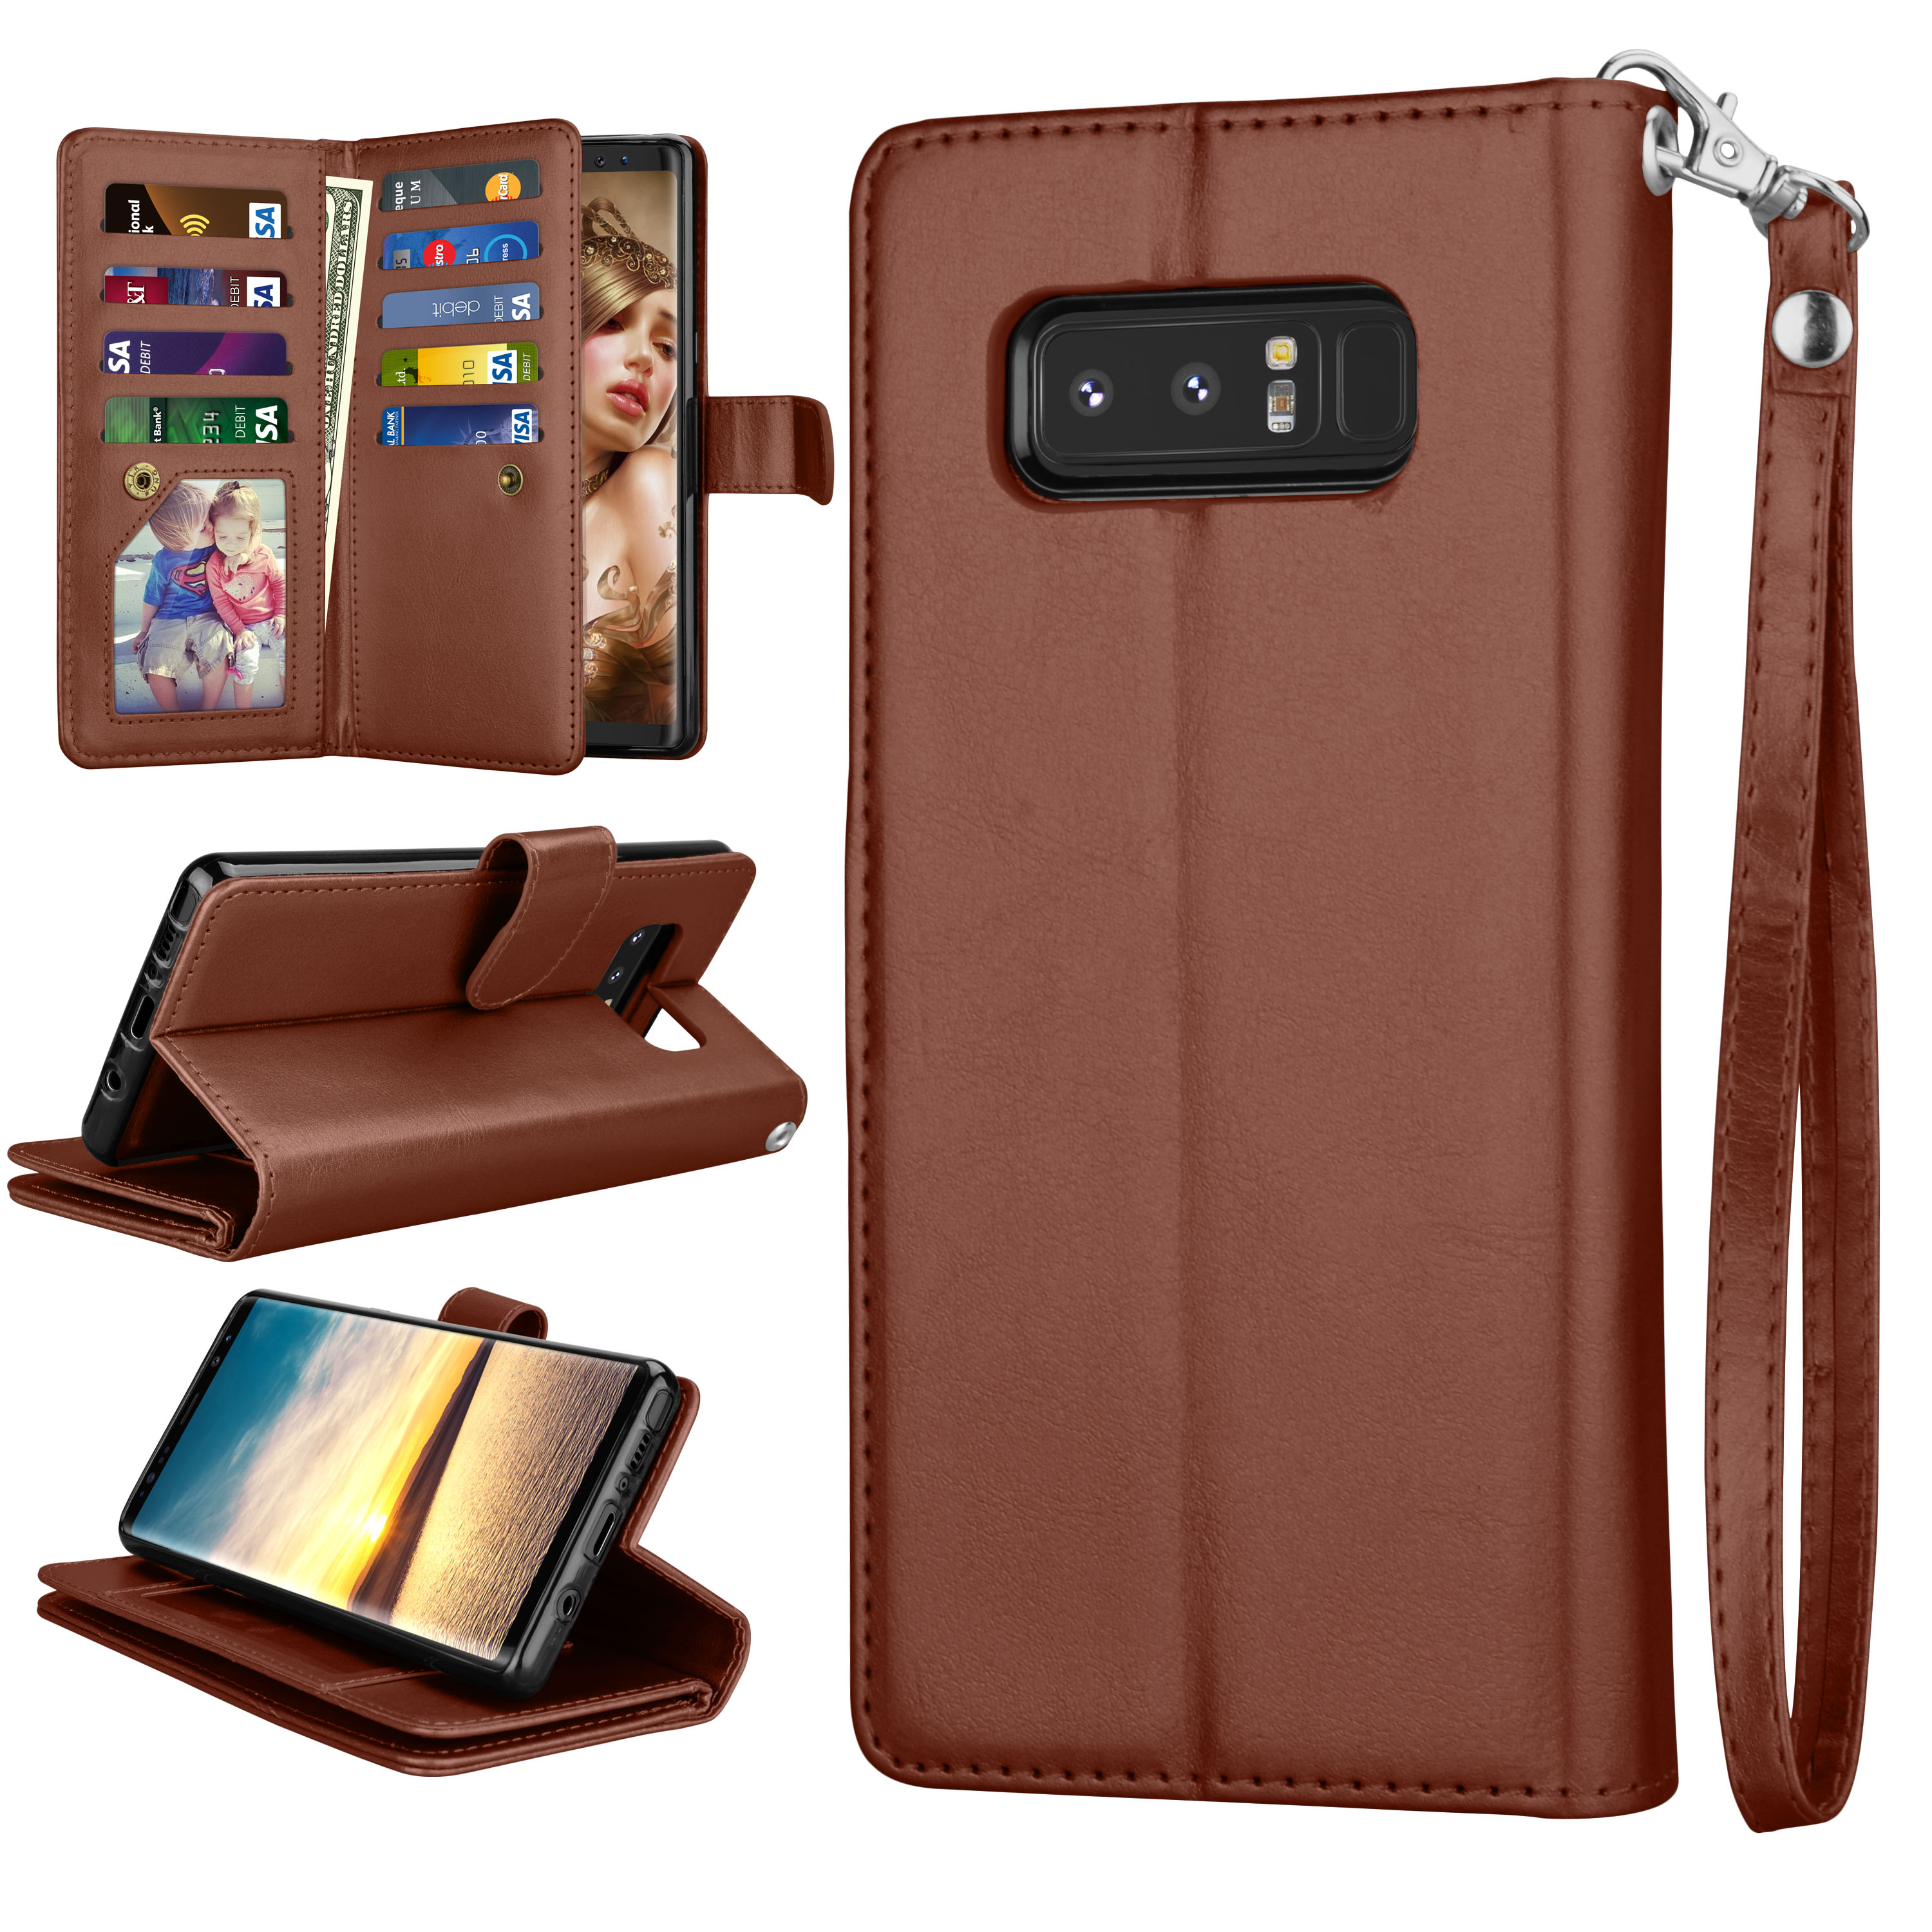 Galaxy Note 8 Case, Note 8 Wallet Case, Njjex Luxury PU Leather Wallet Case with ID&Card Holder Slot Detachable Magnetic Hard Case & Kickstand Case For Samsung Galaxy Note 8 -Rose Gold